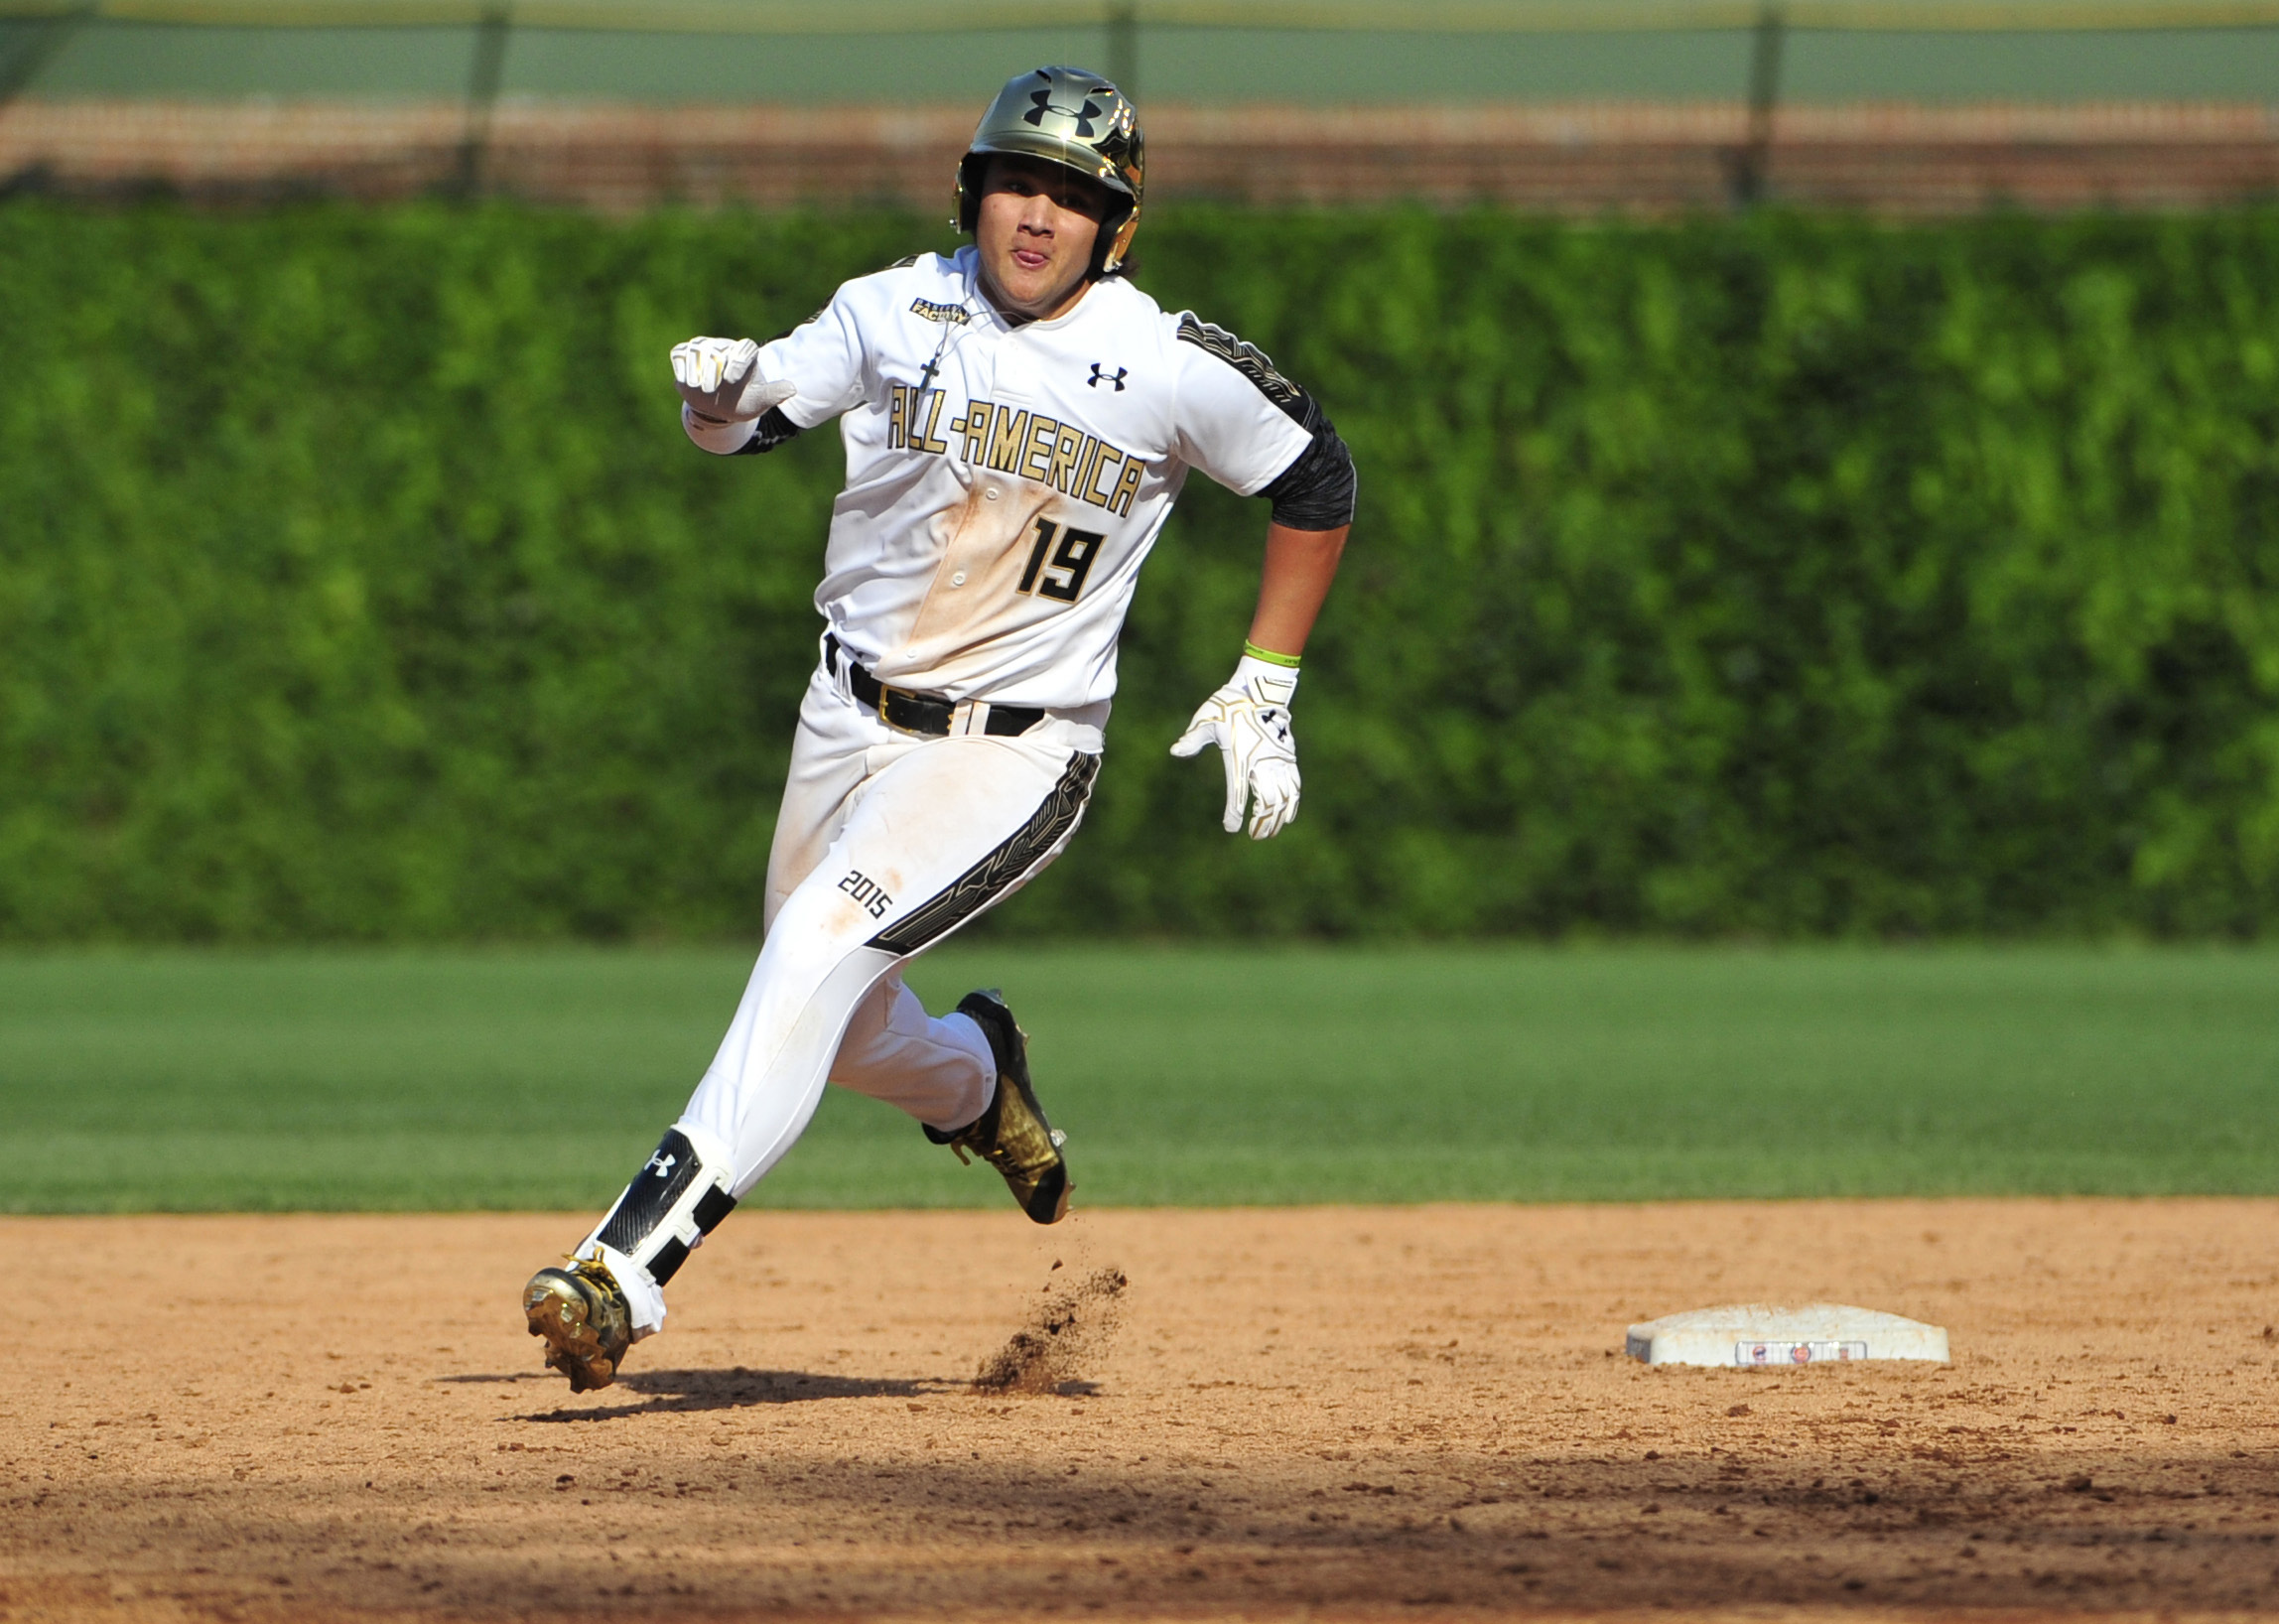 National third baseman Bo Bichette runs the bases on his way to a triple against the American team during the fifth inning in the Under Armour All America Baseball game at Wrigley field. (Photo: David Banks, USA TODAY Sports